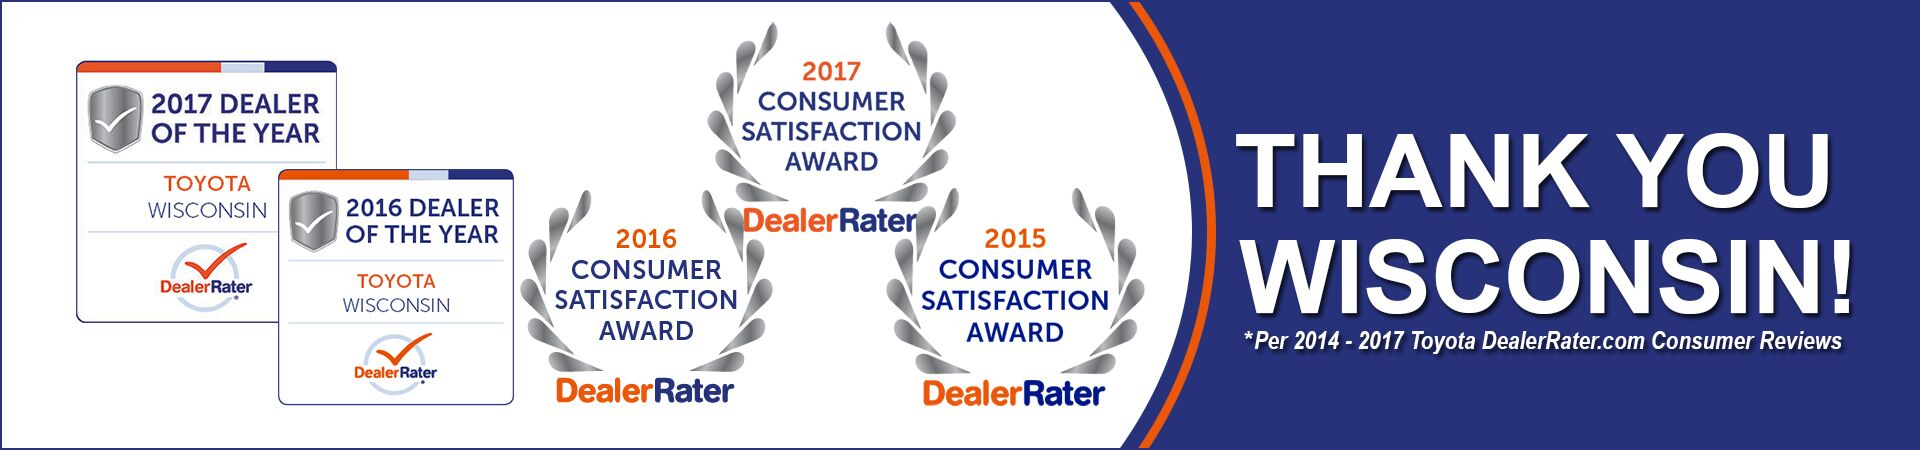 Andrew Toyota Wins the 2017 DealerRater Toyota Dealer of the Year Award AND the 2017 DealerRater Consumer Satisfaction Award.